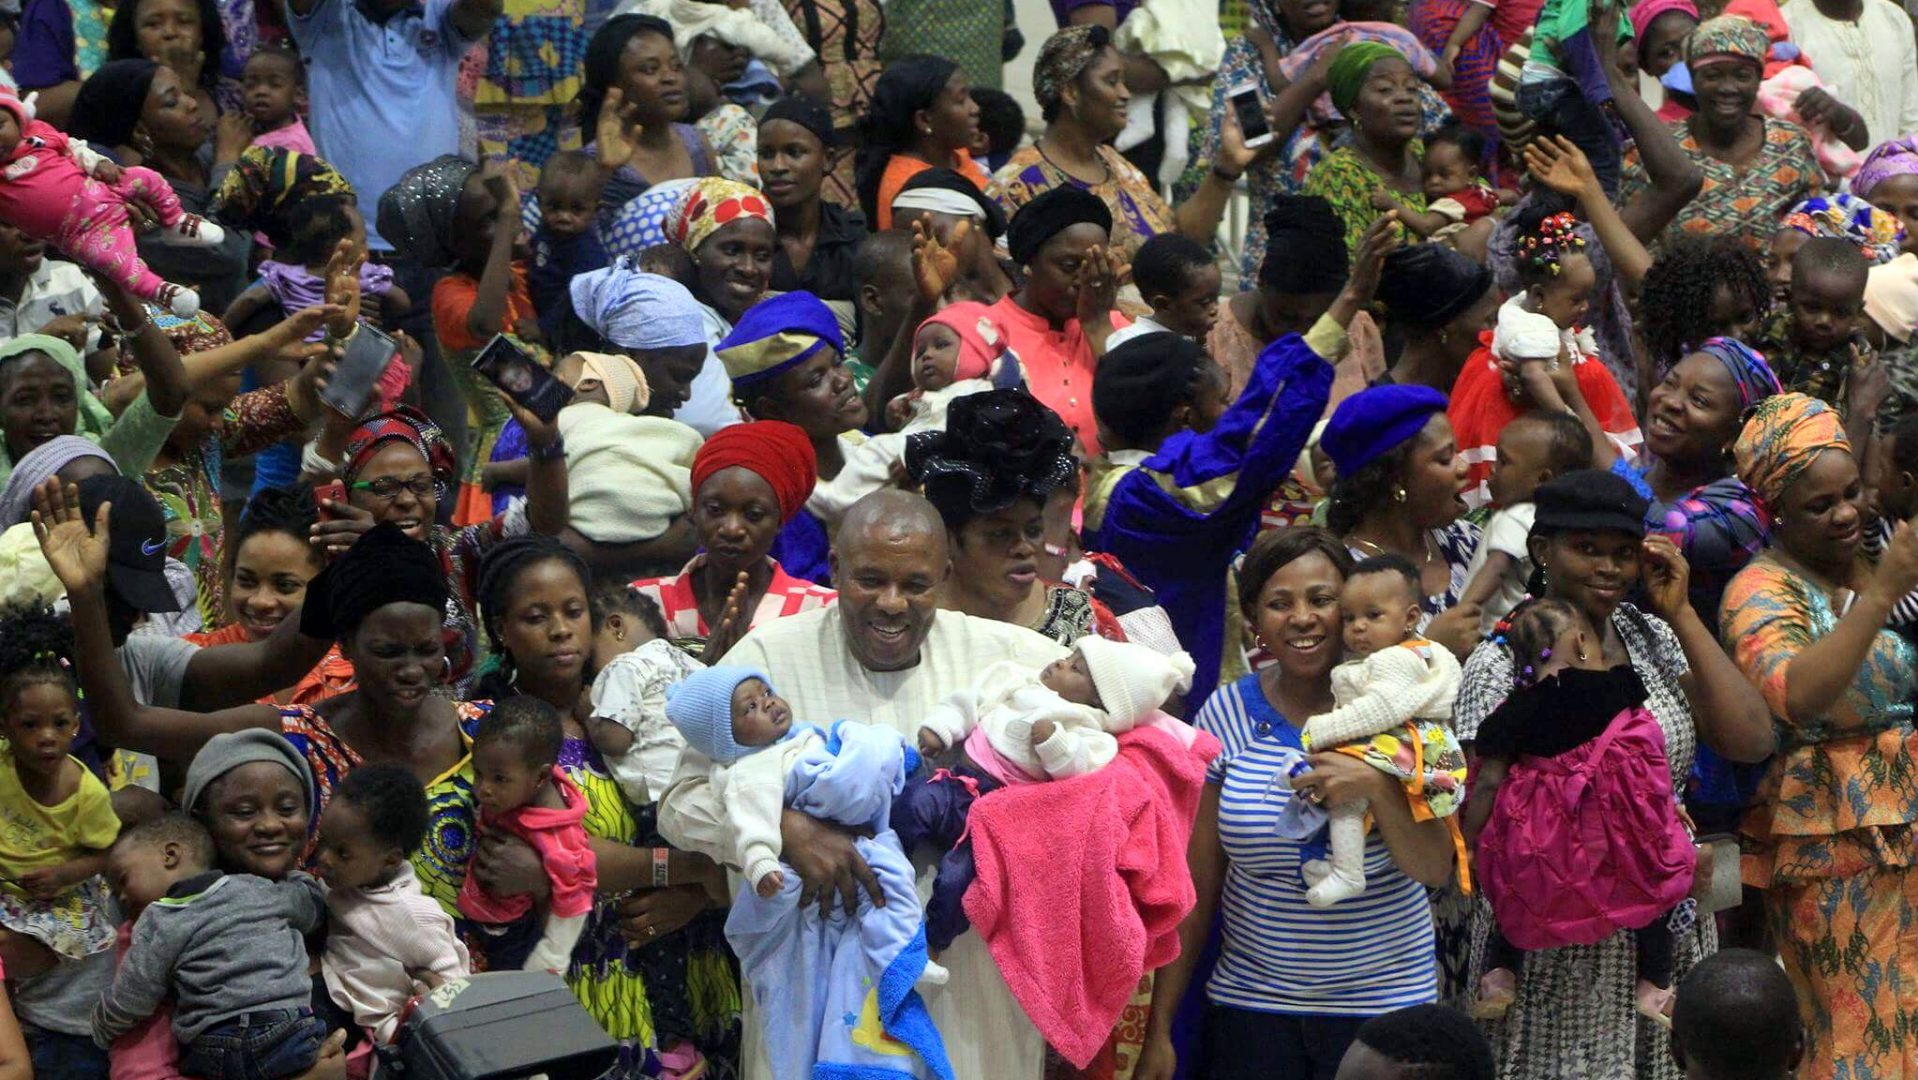 FEATURE: RCCG lady avoids Pastor Adeboye's prayers for babies